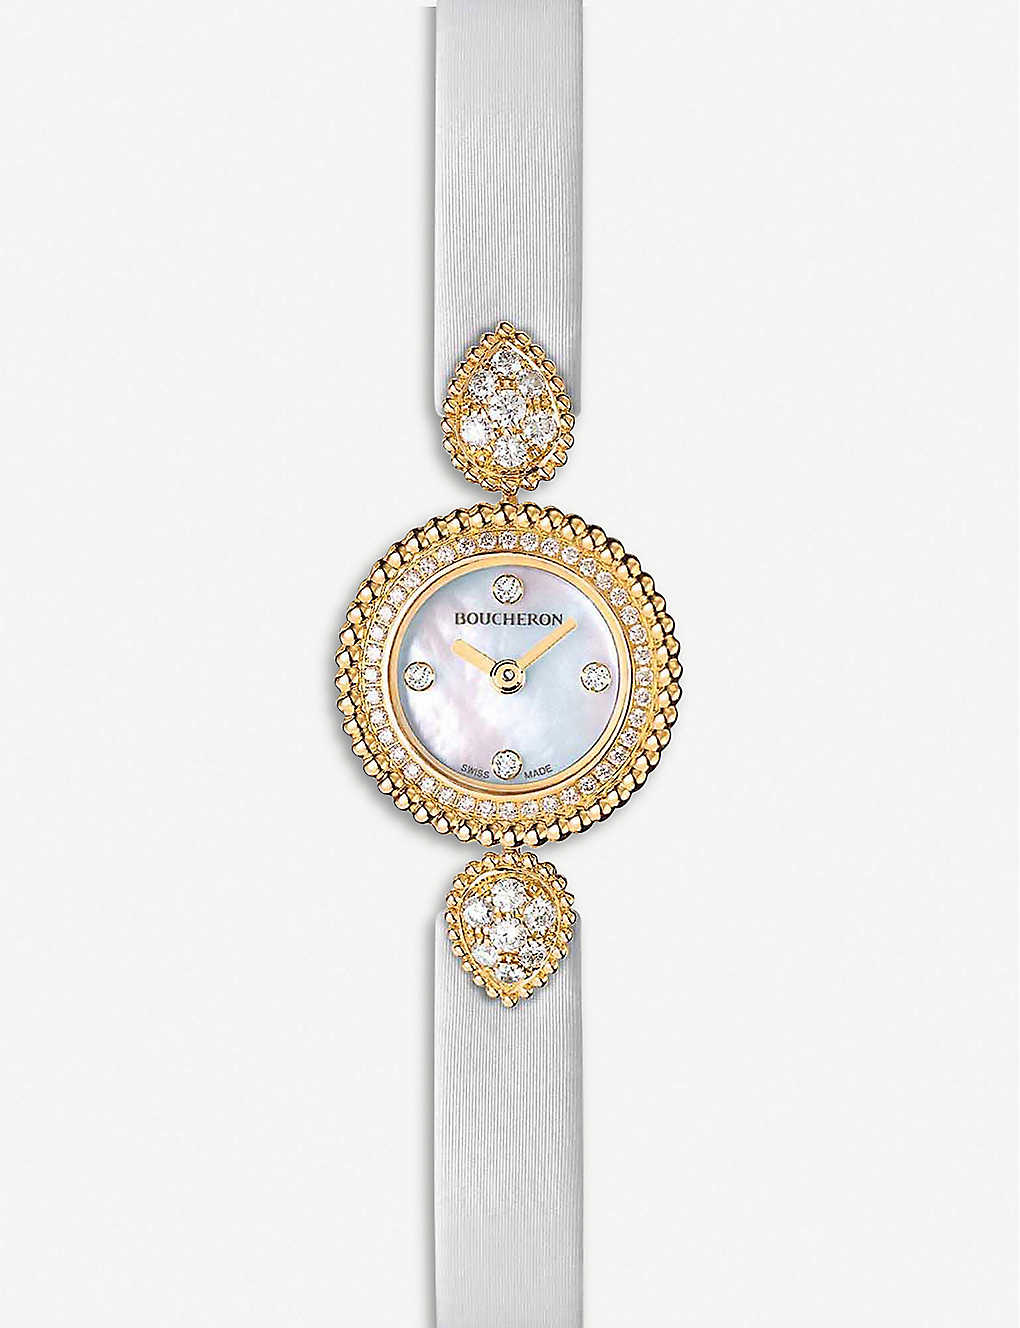 BOUCHERON: Serpent Boheme 18ct yellow-gold, diamond and mother-of-pearl watch